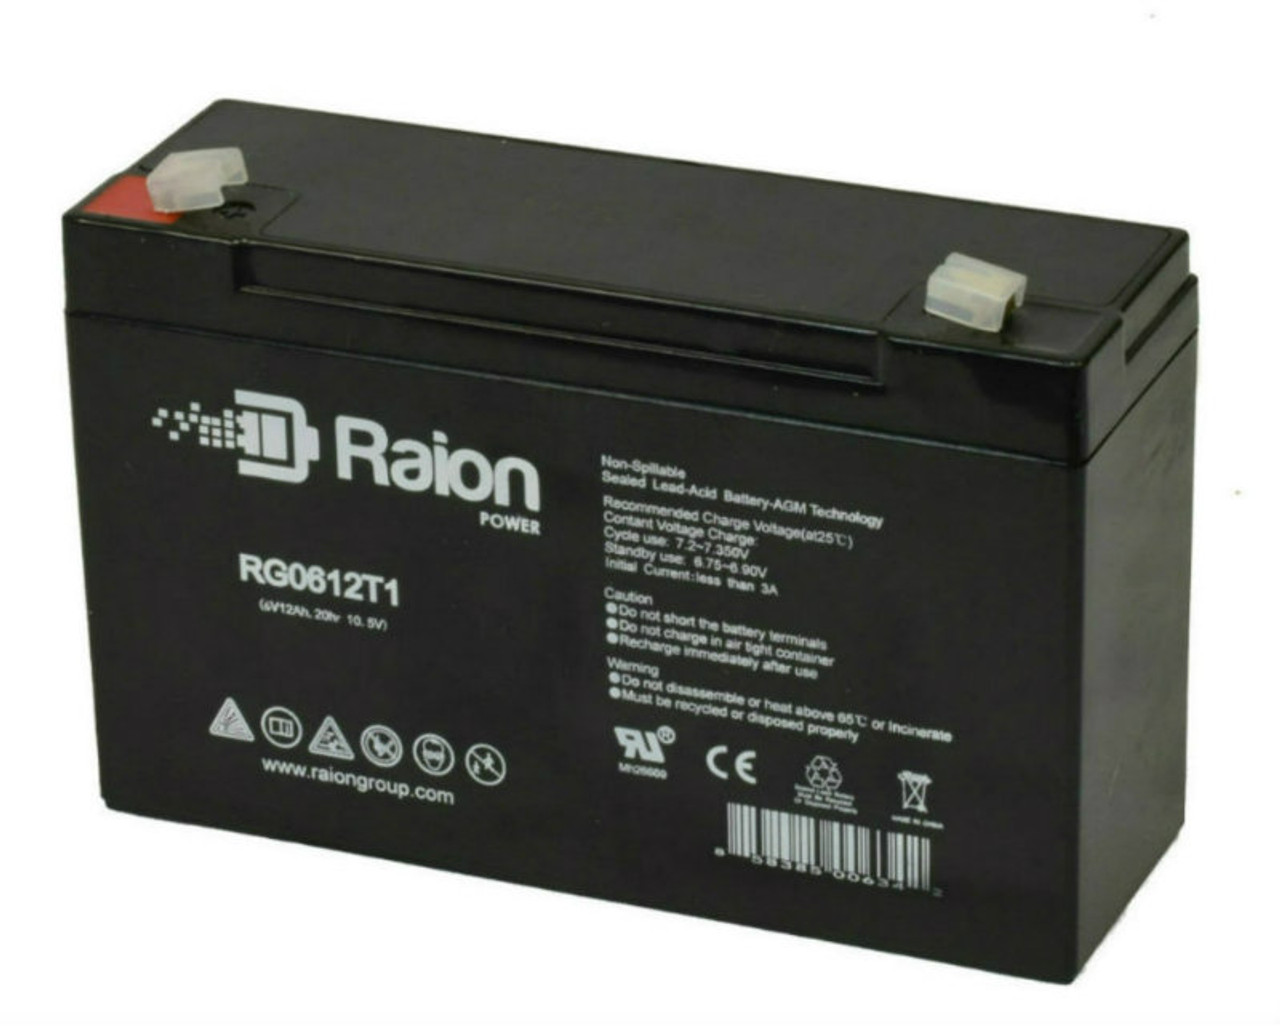 Raion Power RG06120T1 Replacement Battery Pack for Elsar 2328 emergency light